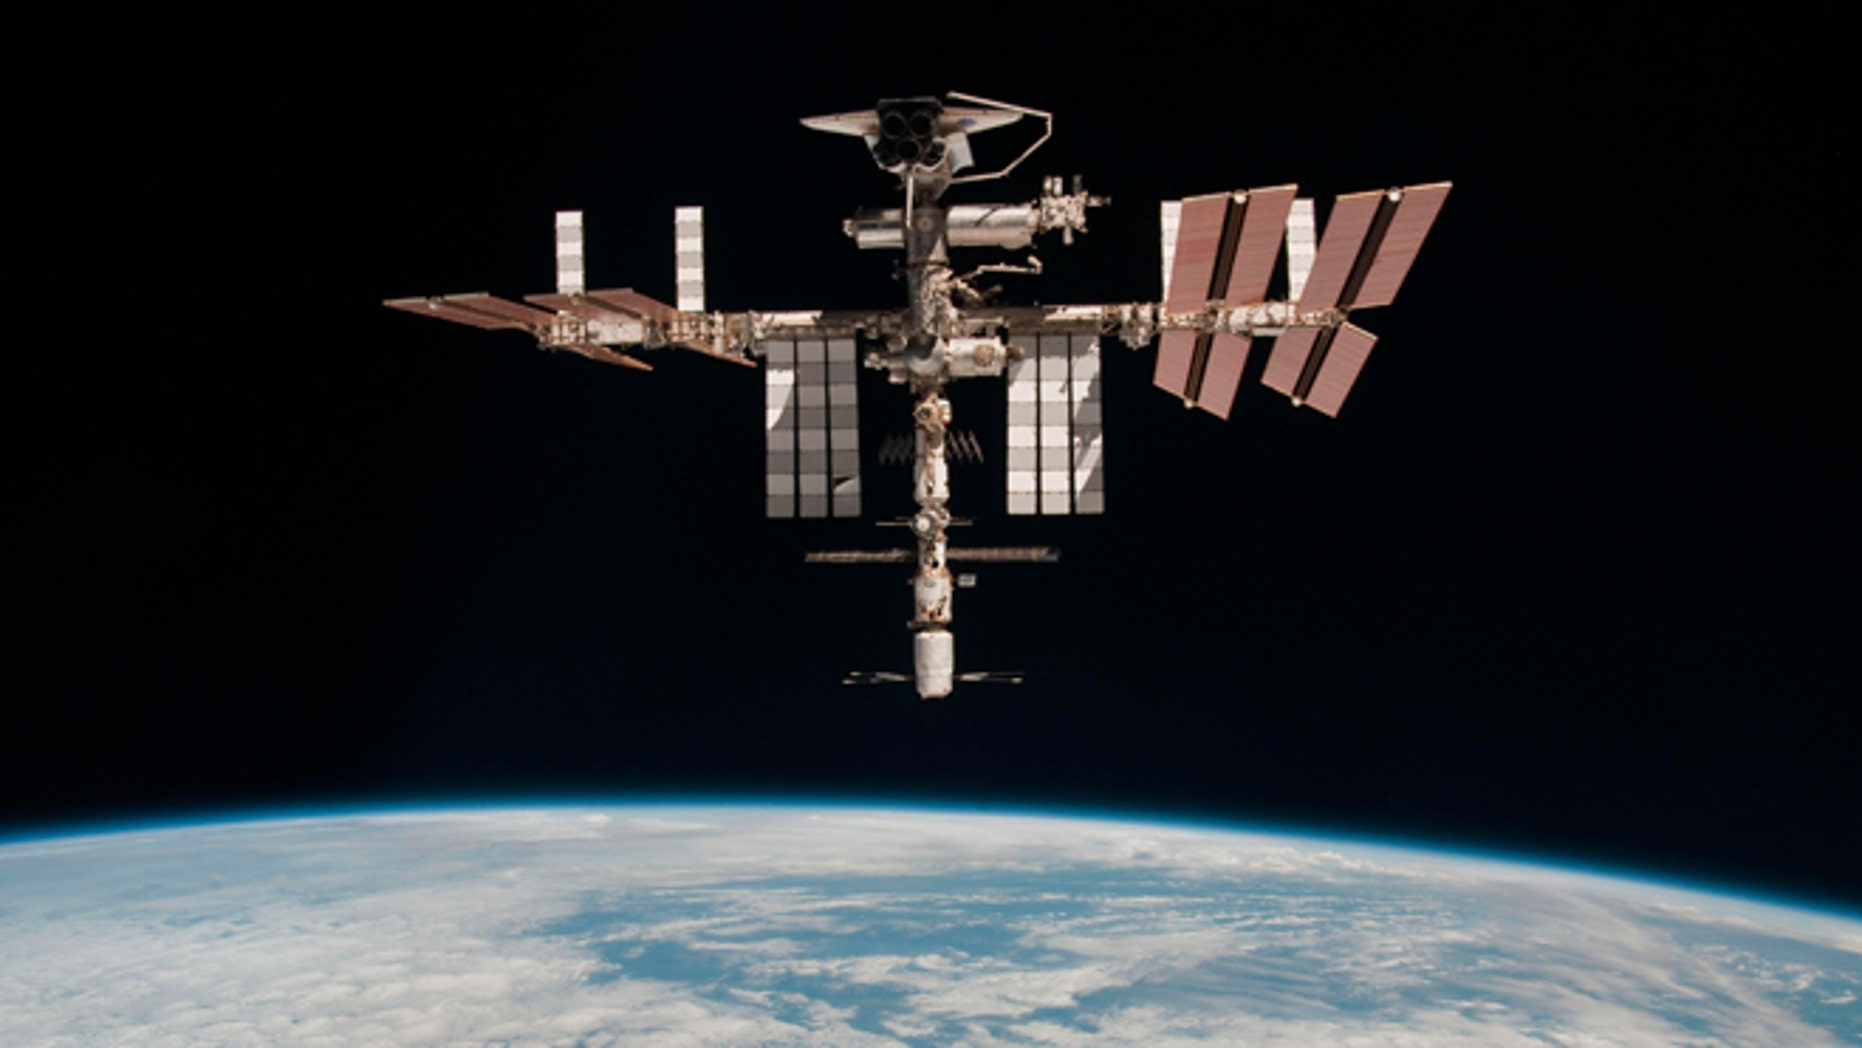 A view of the International Space Station (ISS).